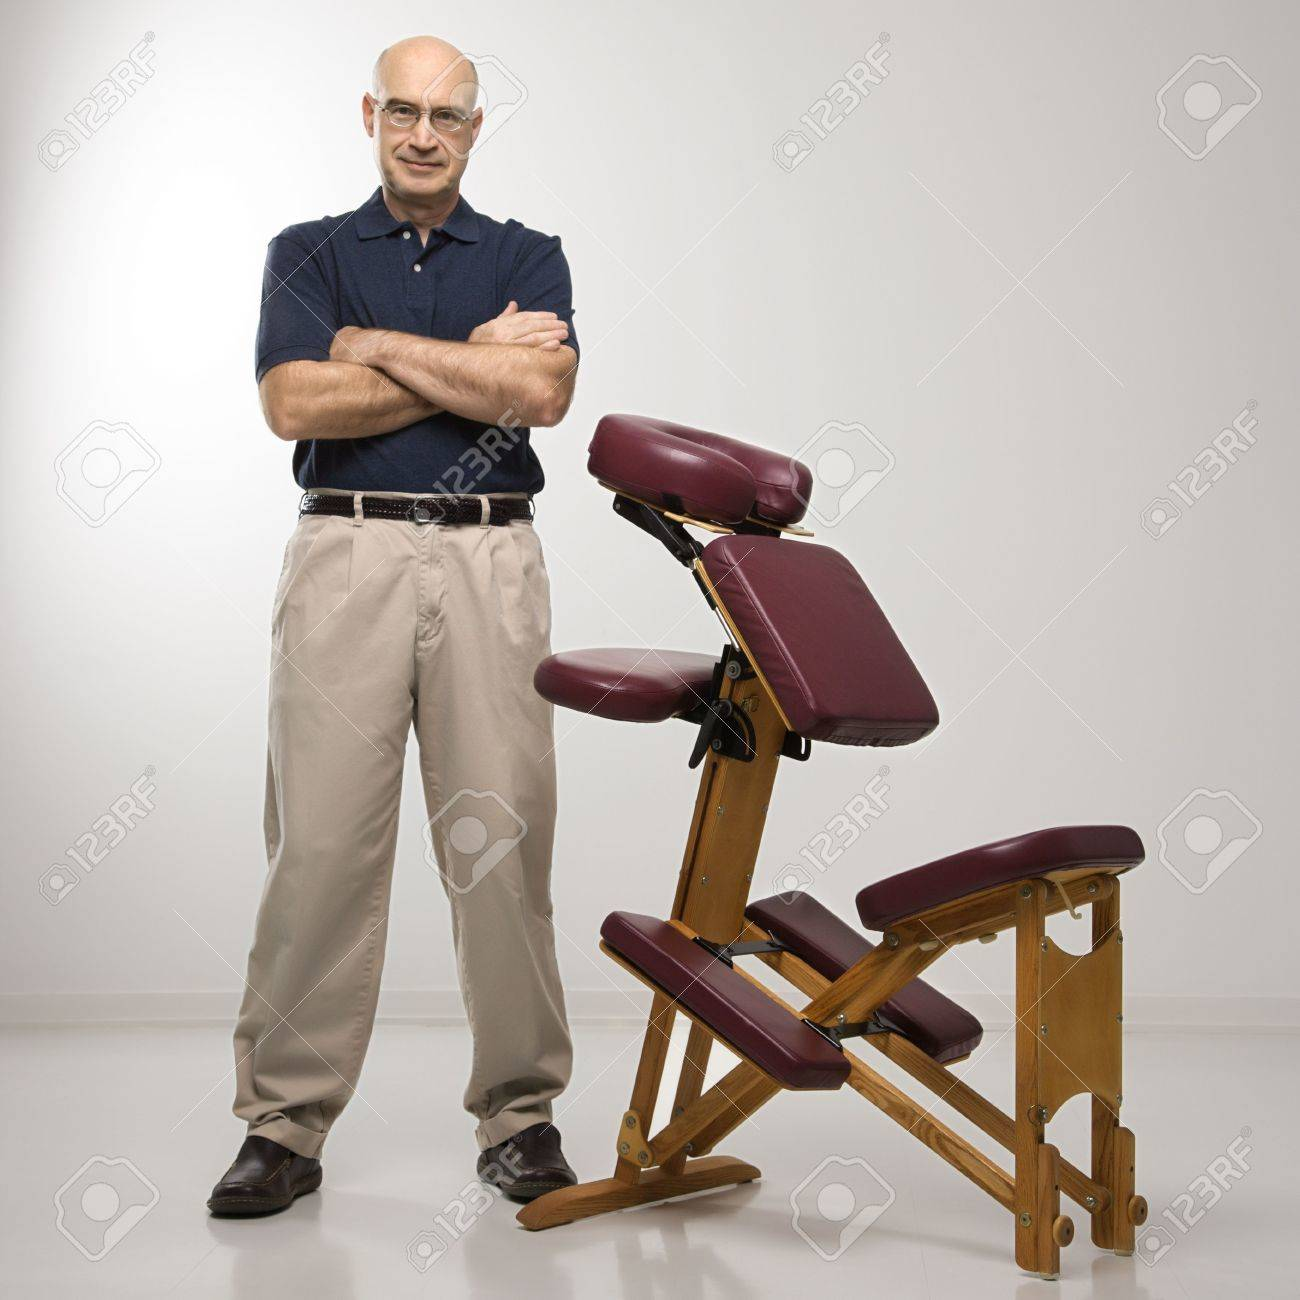 Massage Therapist Chair Caucasian Middle Aged Male Massage Therapist Standing With Arms